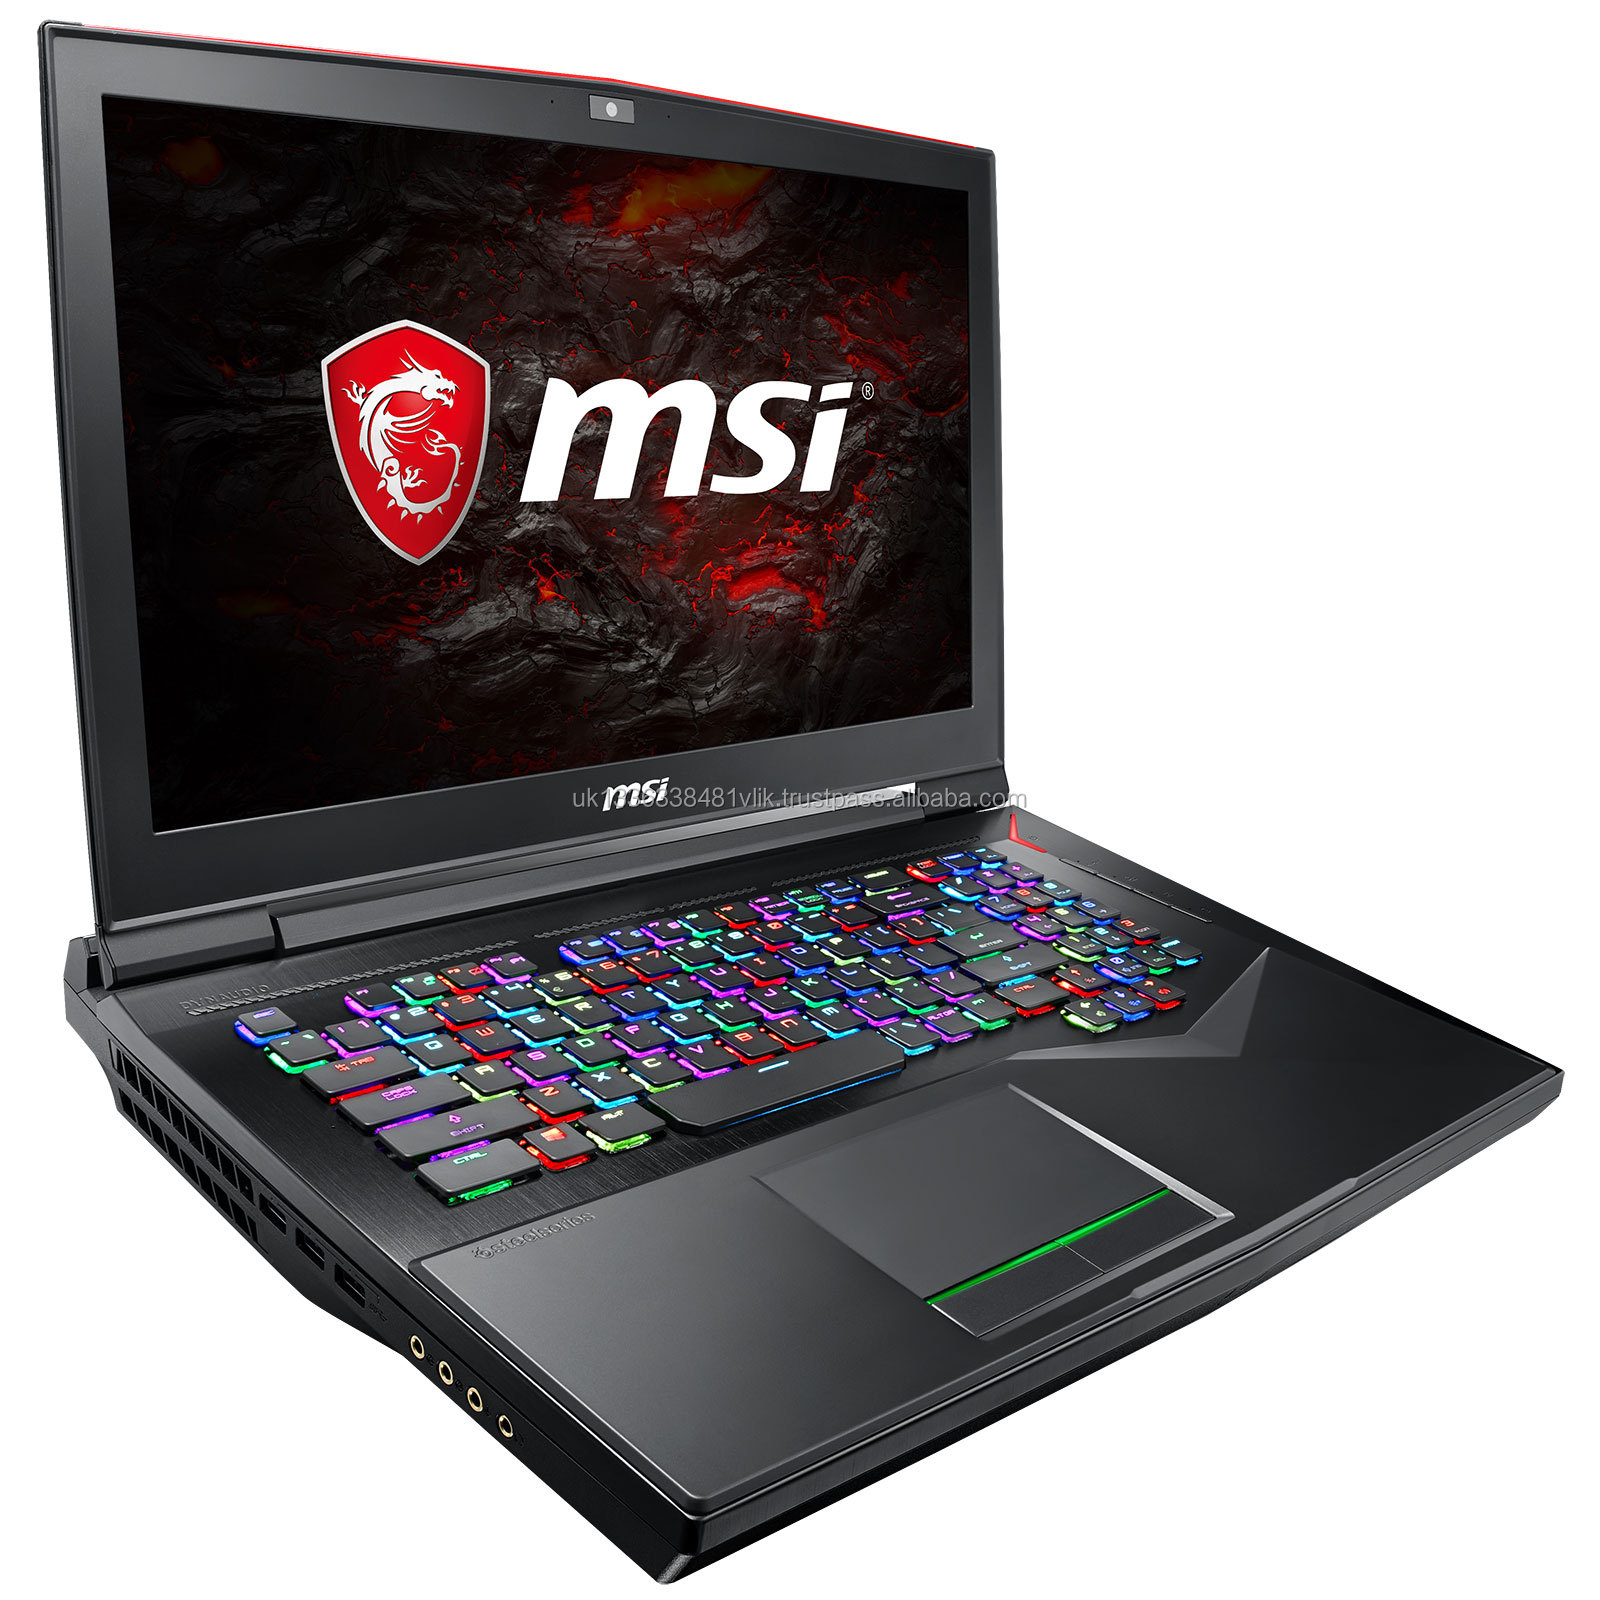 "MSI GS75 Stealth-093 17,3 ""Razor Dünne Lünette Gaming Laptop RTX 2080 8G Max-Q, 144Hz 3 ms, Intel i7-8750H (6 kerne), 32 GB, 5"